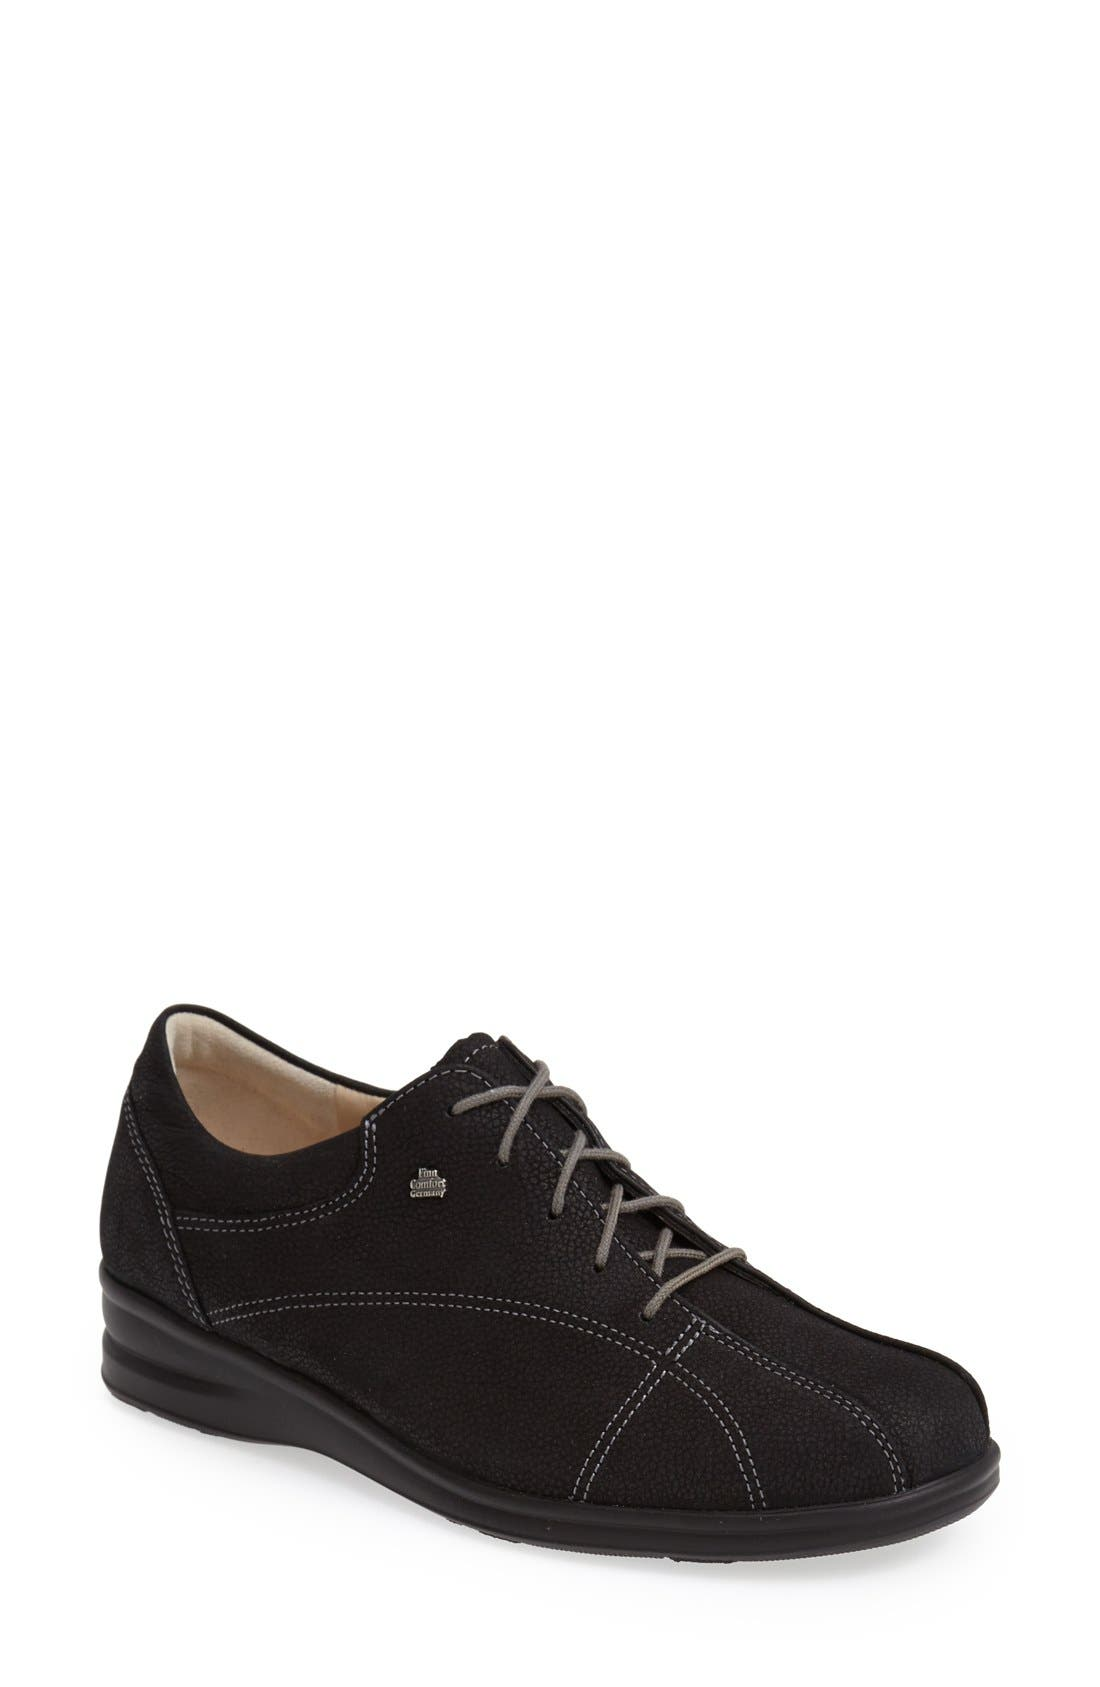 Alternate Image 1 Selected - Finn Comfort 'Ariano' Leather Sneaker (Women)